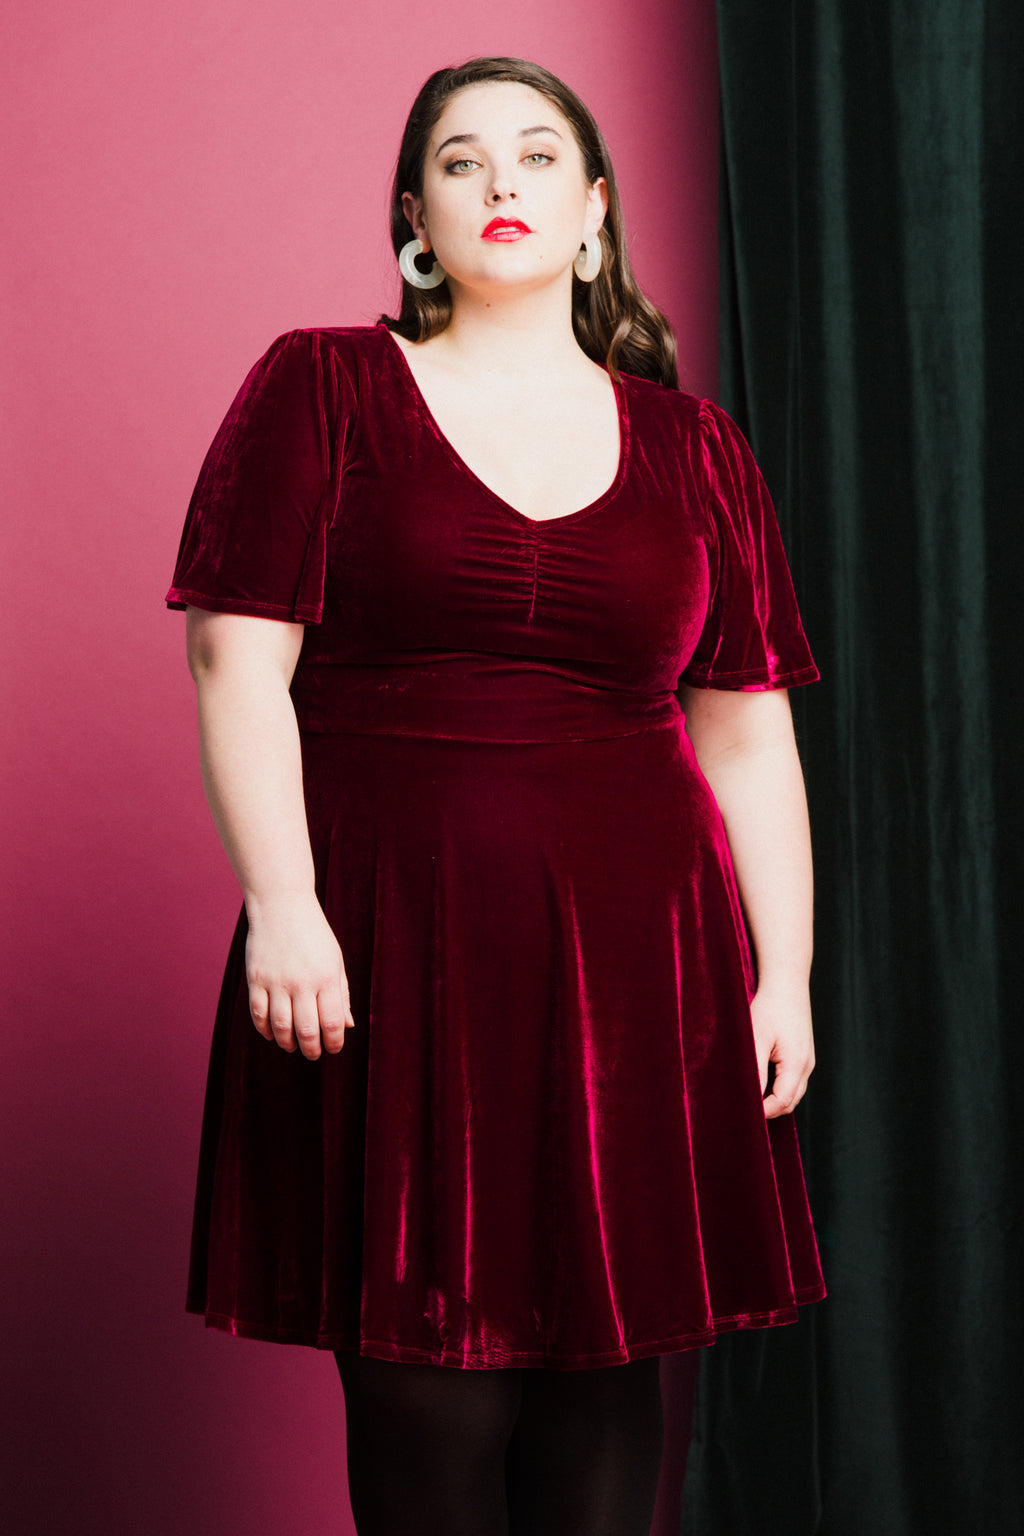 December Dress in Burgundy